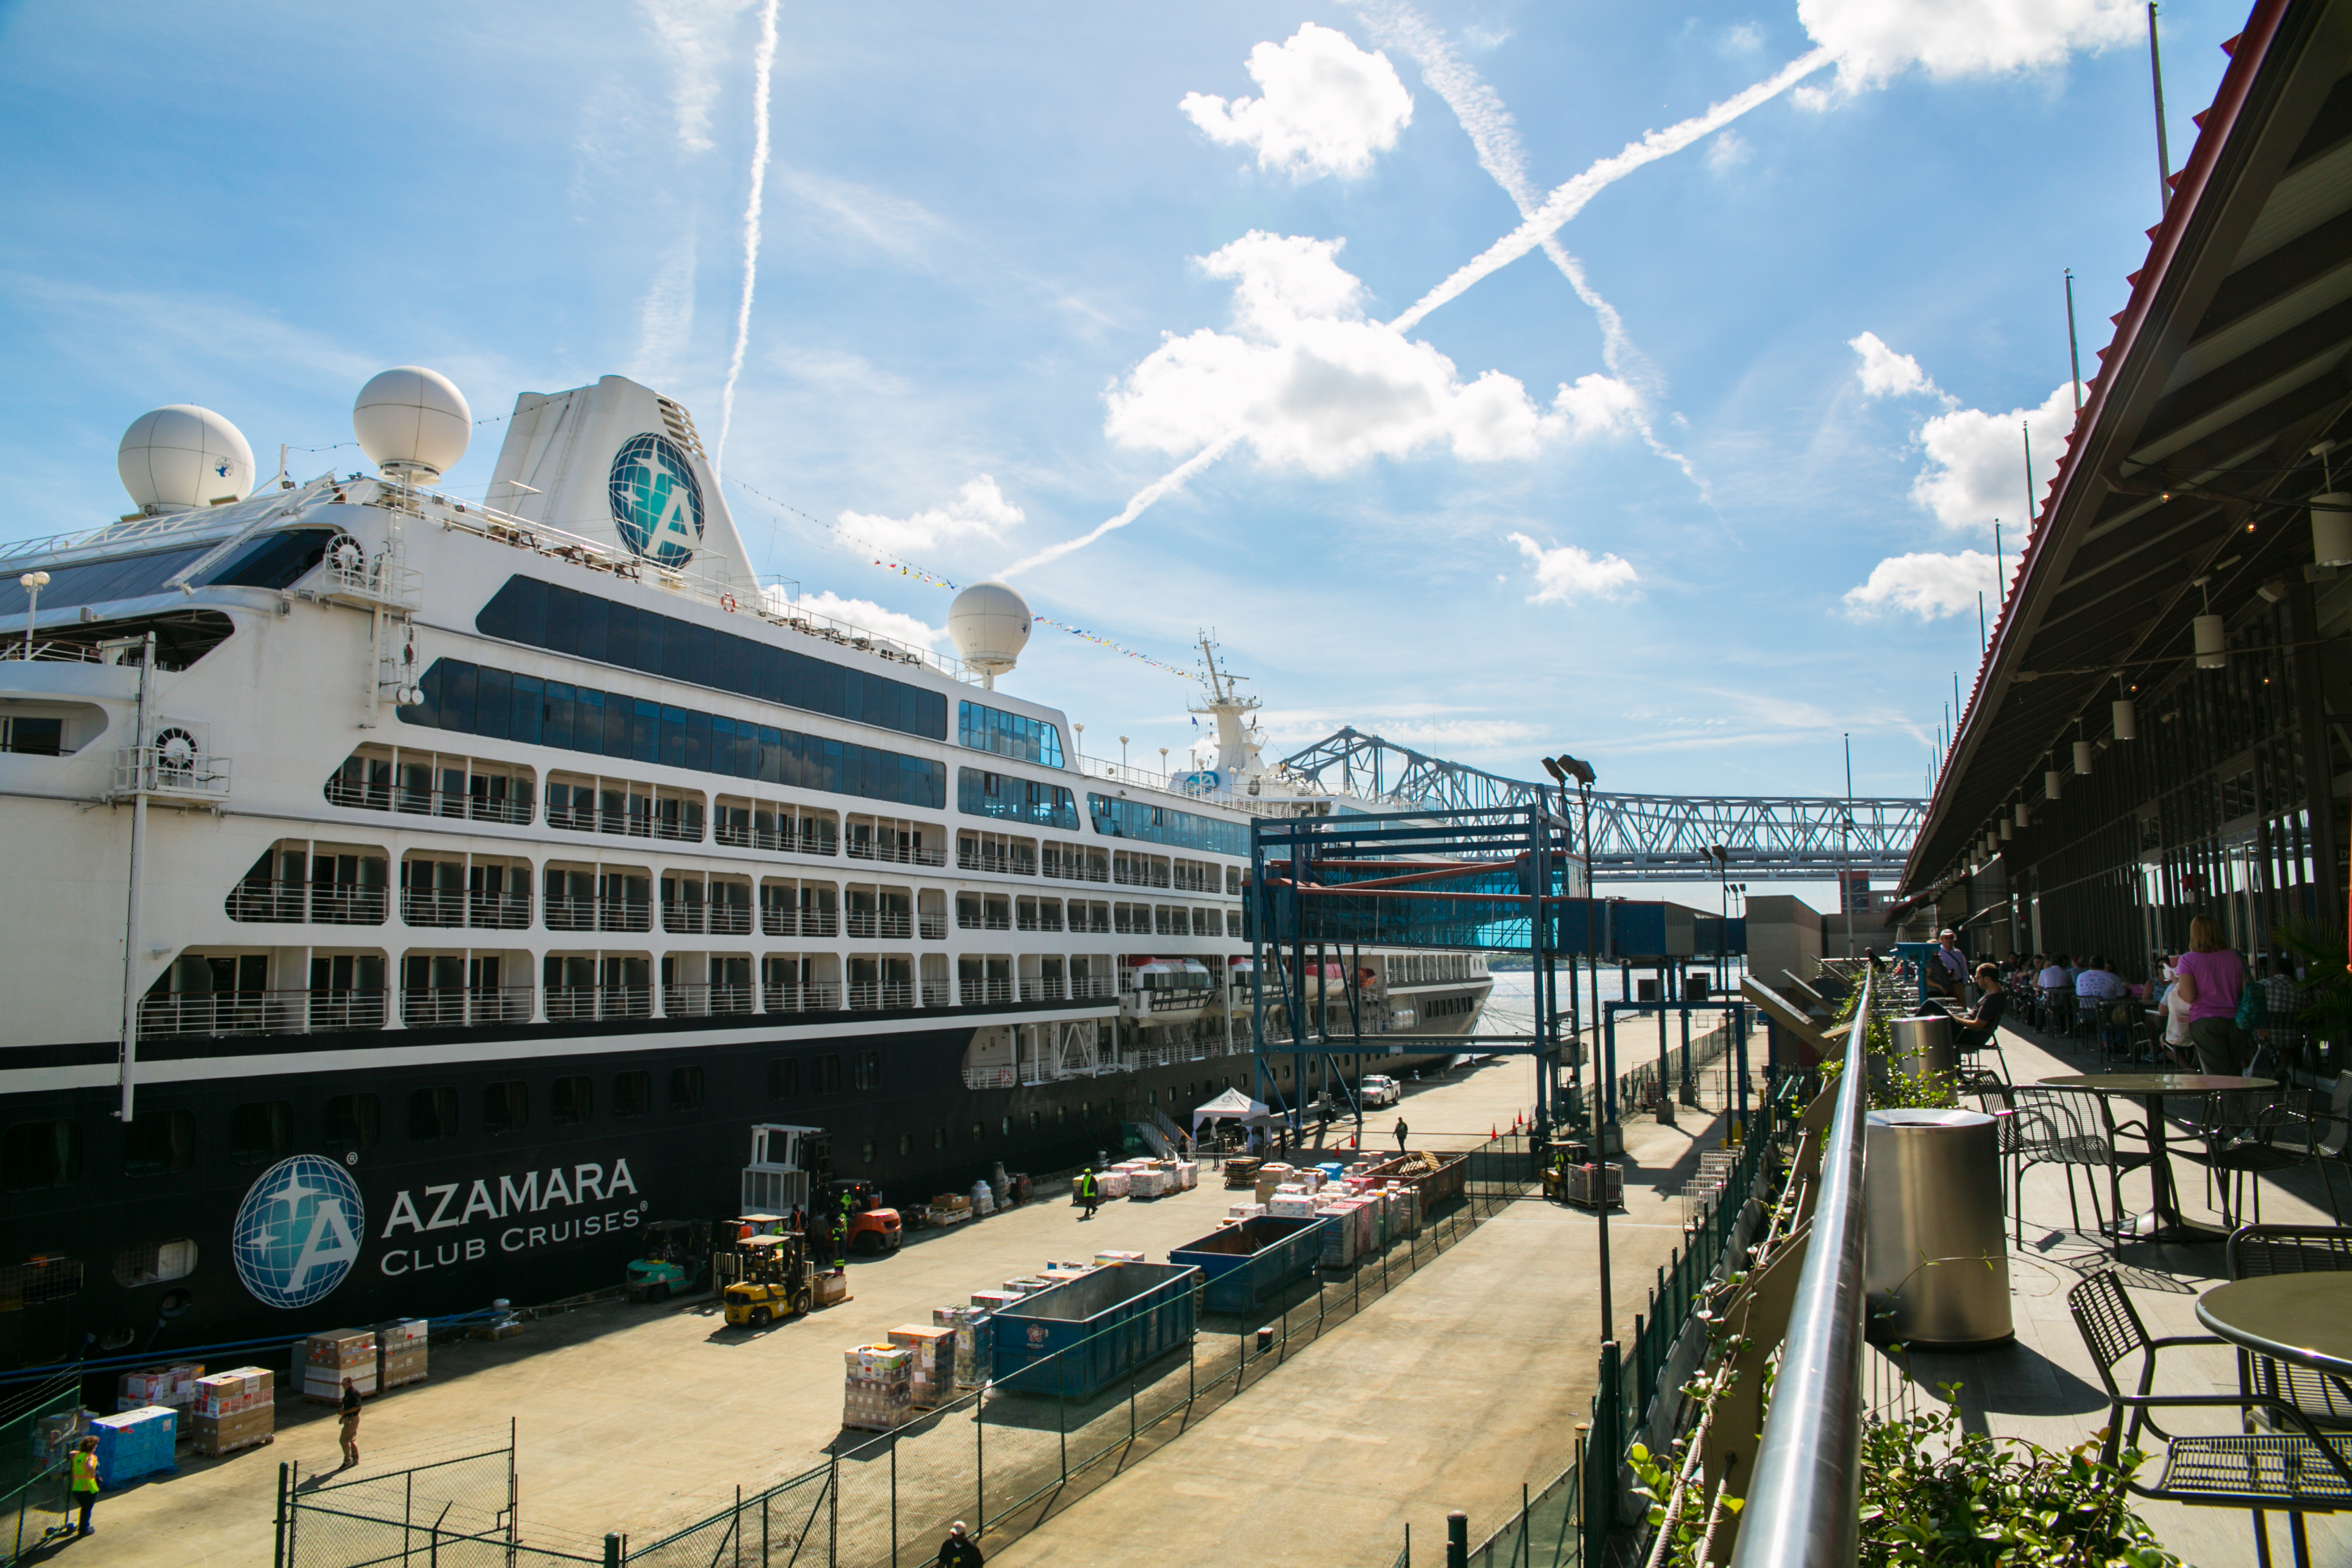 Cruises From New Orleans - Cruise ships new orleans